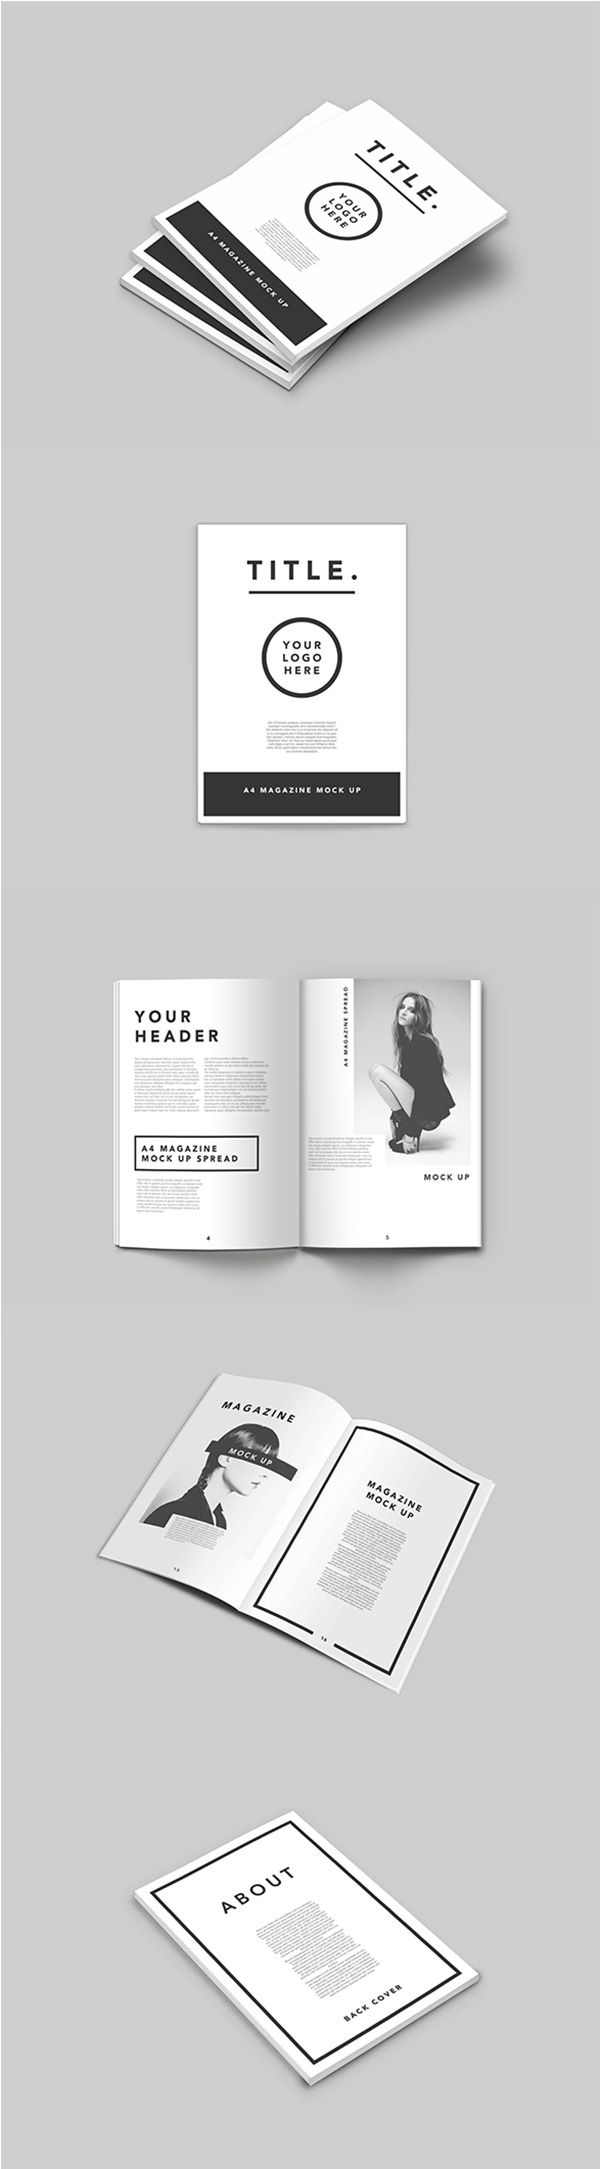 MAGAZINE-PSD-MOCK-UP-A4-TEMPLATE